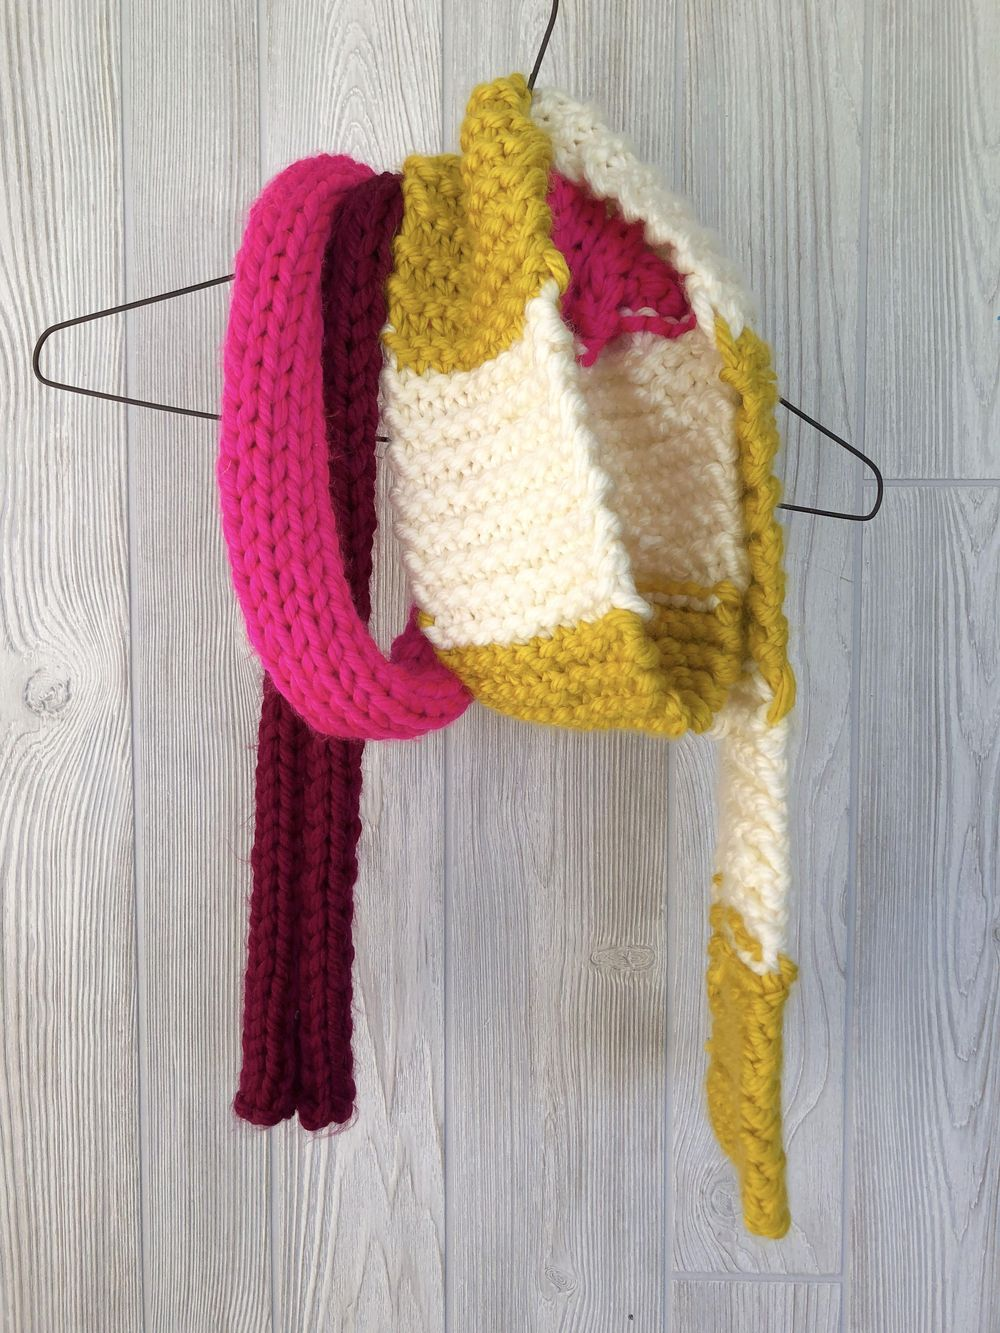 Fall Into Color Scarf - image 7 - student project